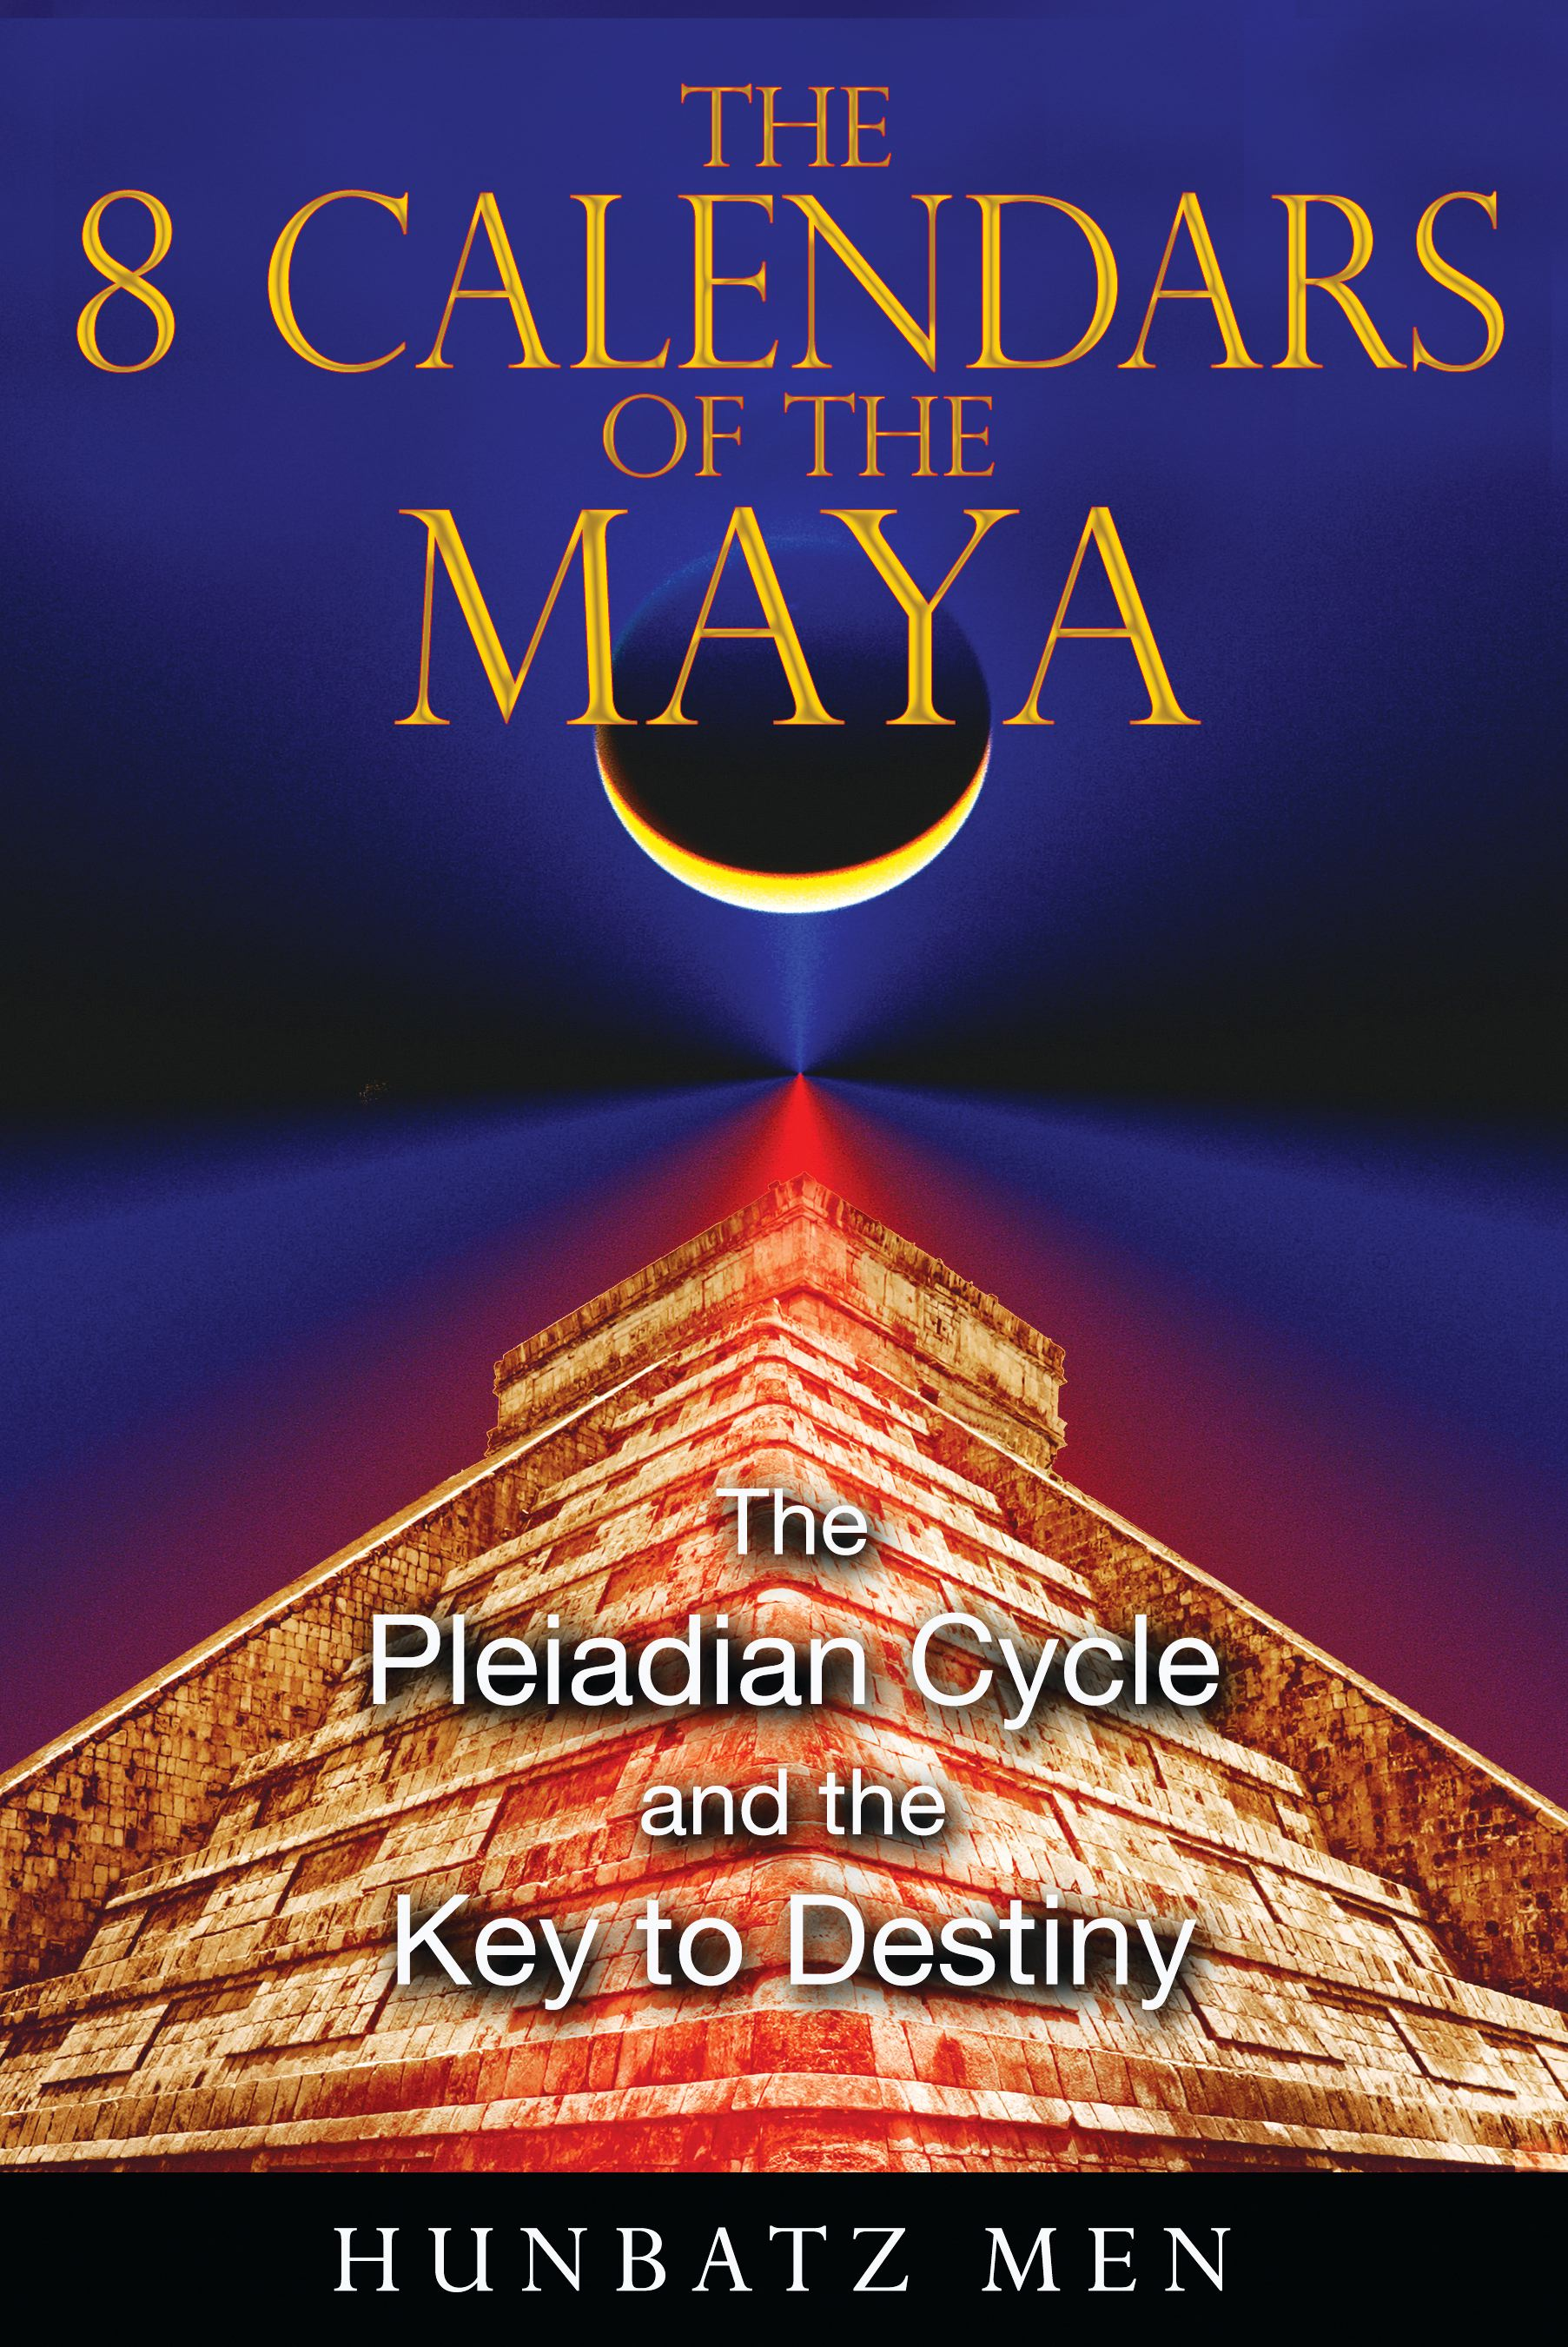 The-8-calendars-of-the-maya-9781591431053_hr